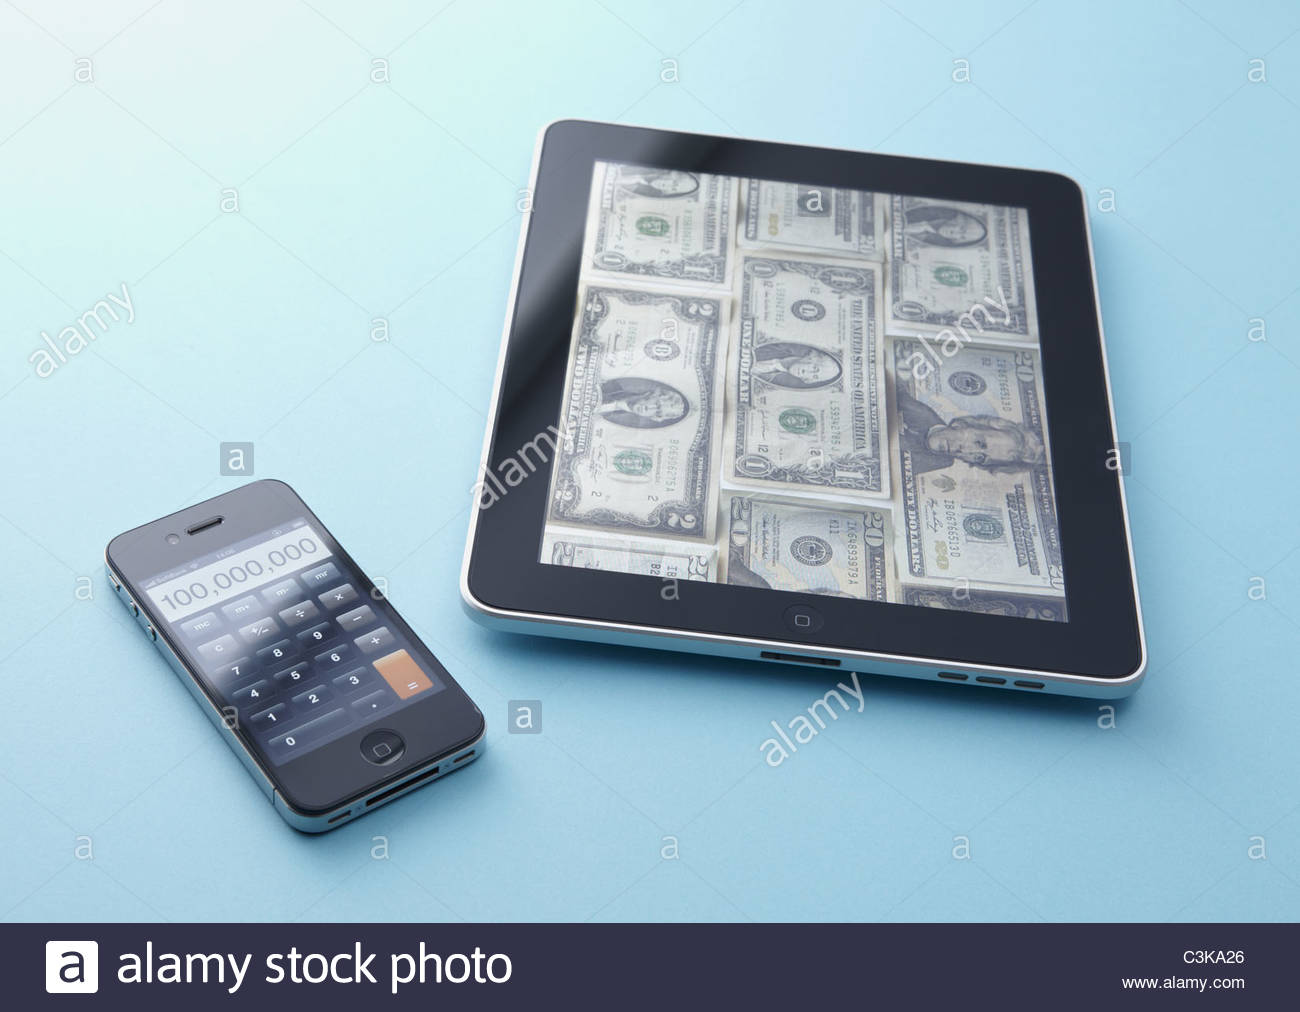 smartphone tablet alamy accent tablette stock piece end table set tall glass cabinet perspex console battery desk lamp off white coffee pottery barn seattle lighting bellevue man